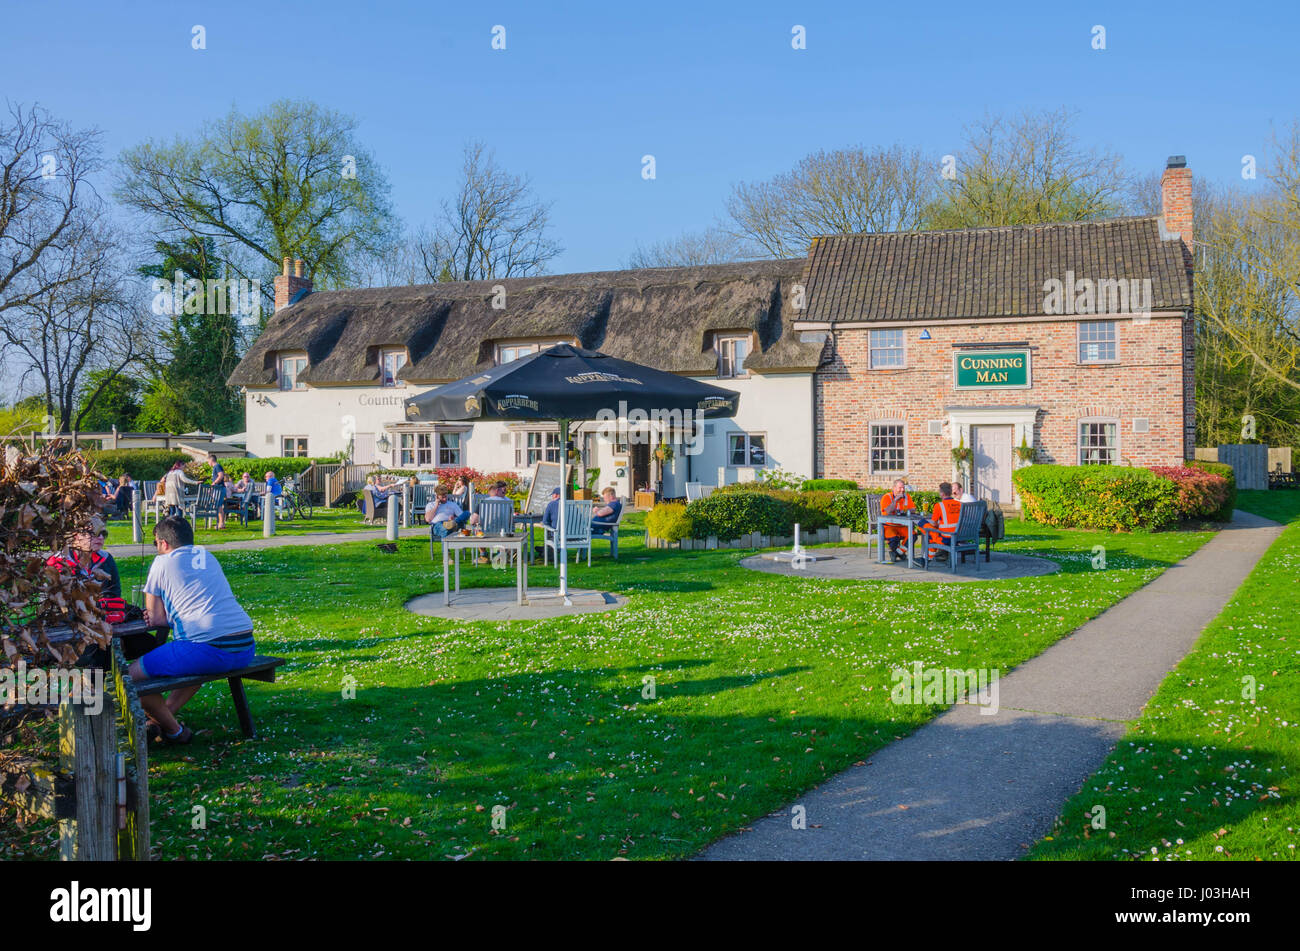 The Cunning Man pub and restaurant on the Burghfield Road in Reading, Berkshire, UK. - Stock Image